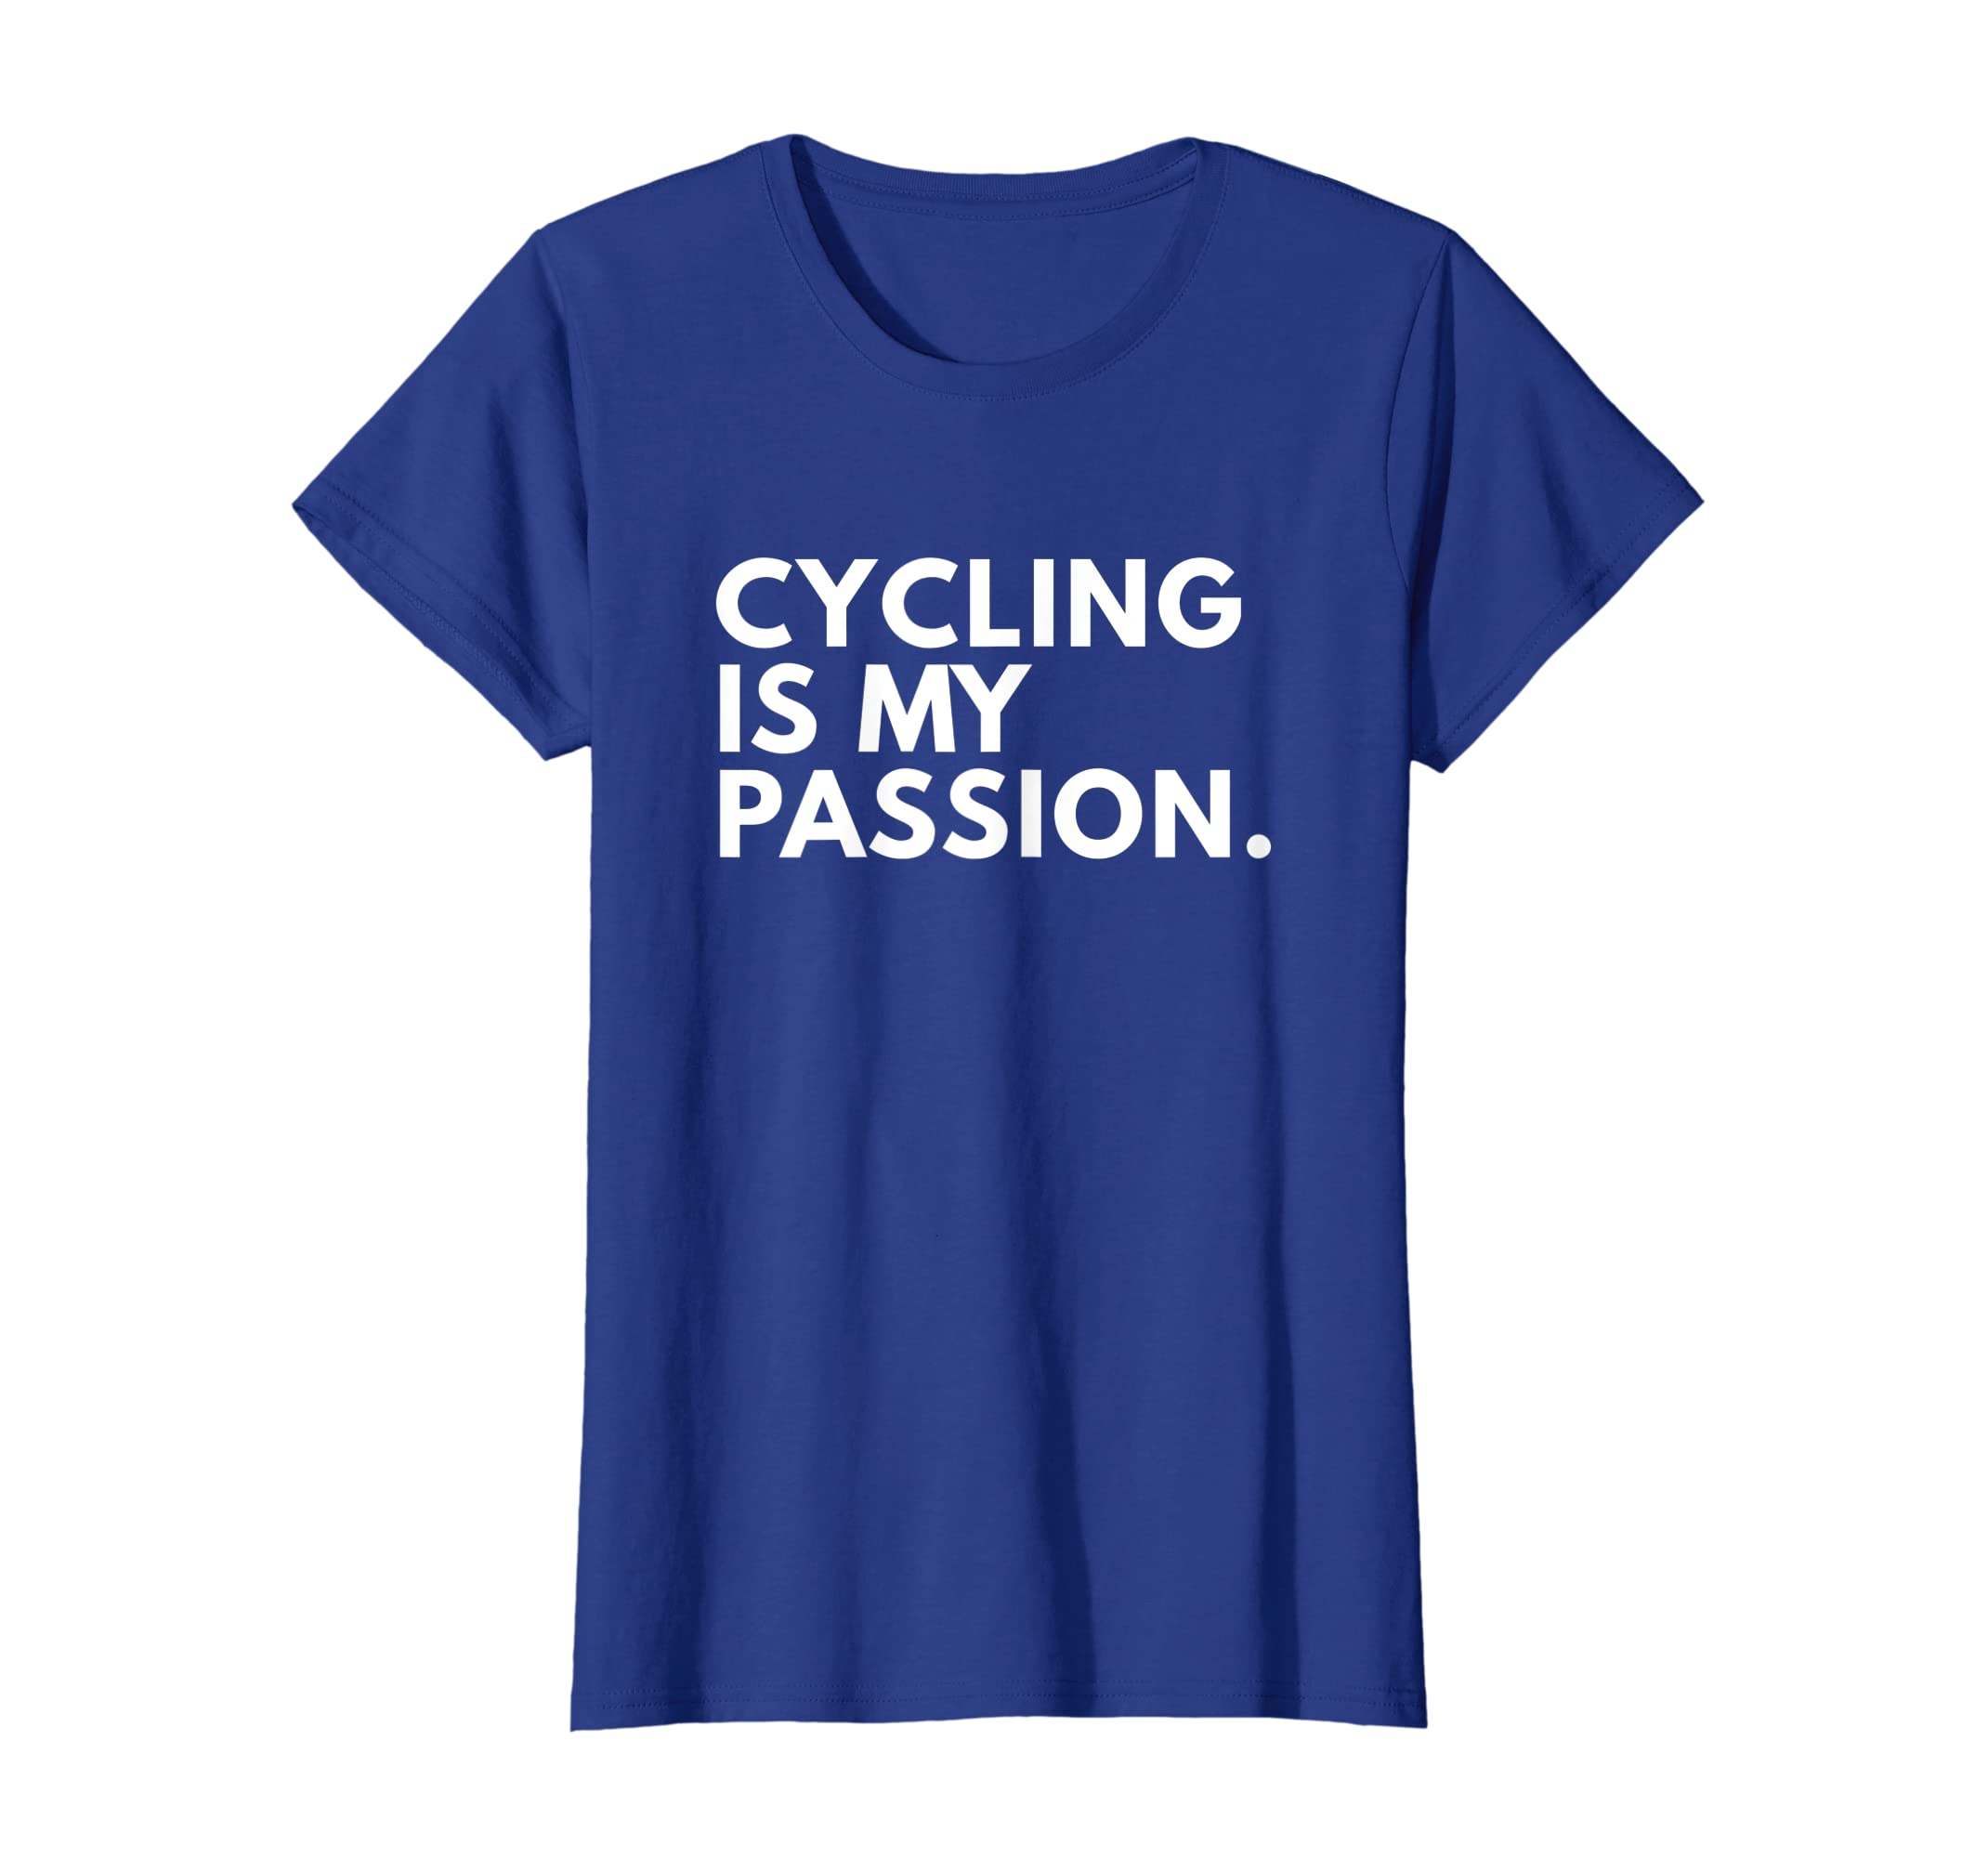 8c2186d46 Amazon.com: Cycling Is My Passion T-Shirt | Funny Cycling TShirts Gifts:  Clothing